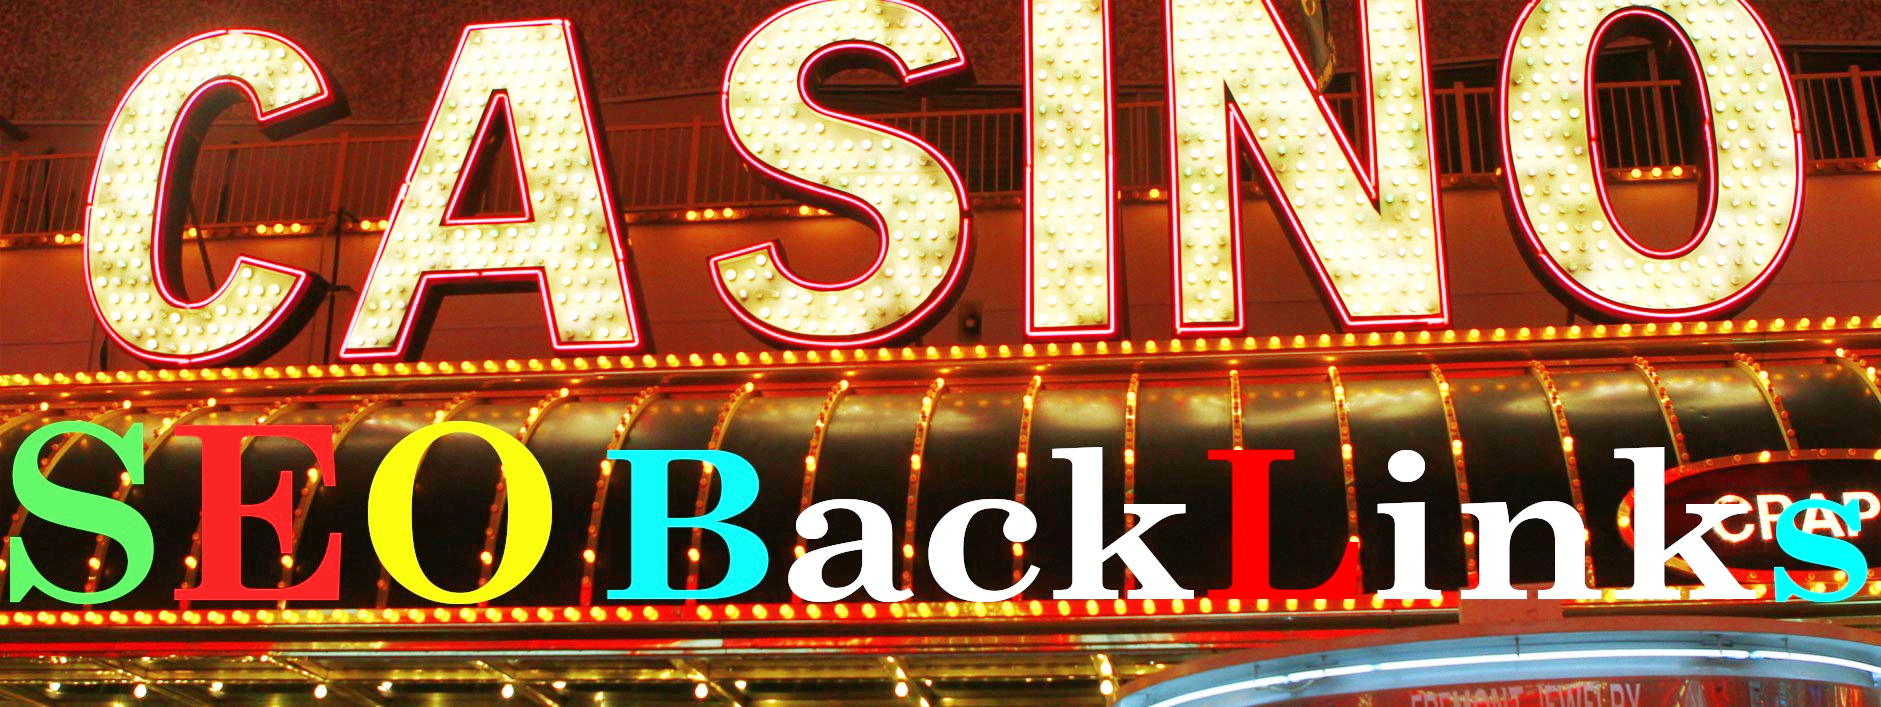 GET 400+ Parmanent CASINO Backlink landing page web 2.0 with HIGH DA/PA/CF/TF WITH UNIQUE WEBSITE